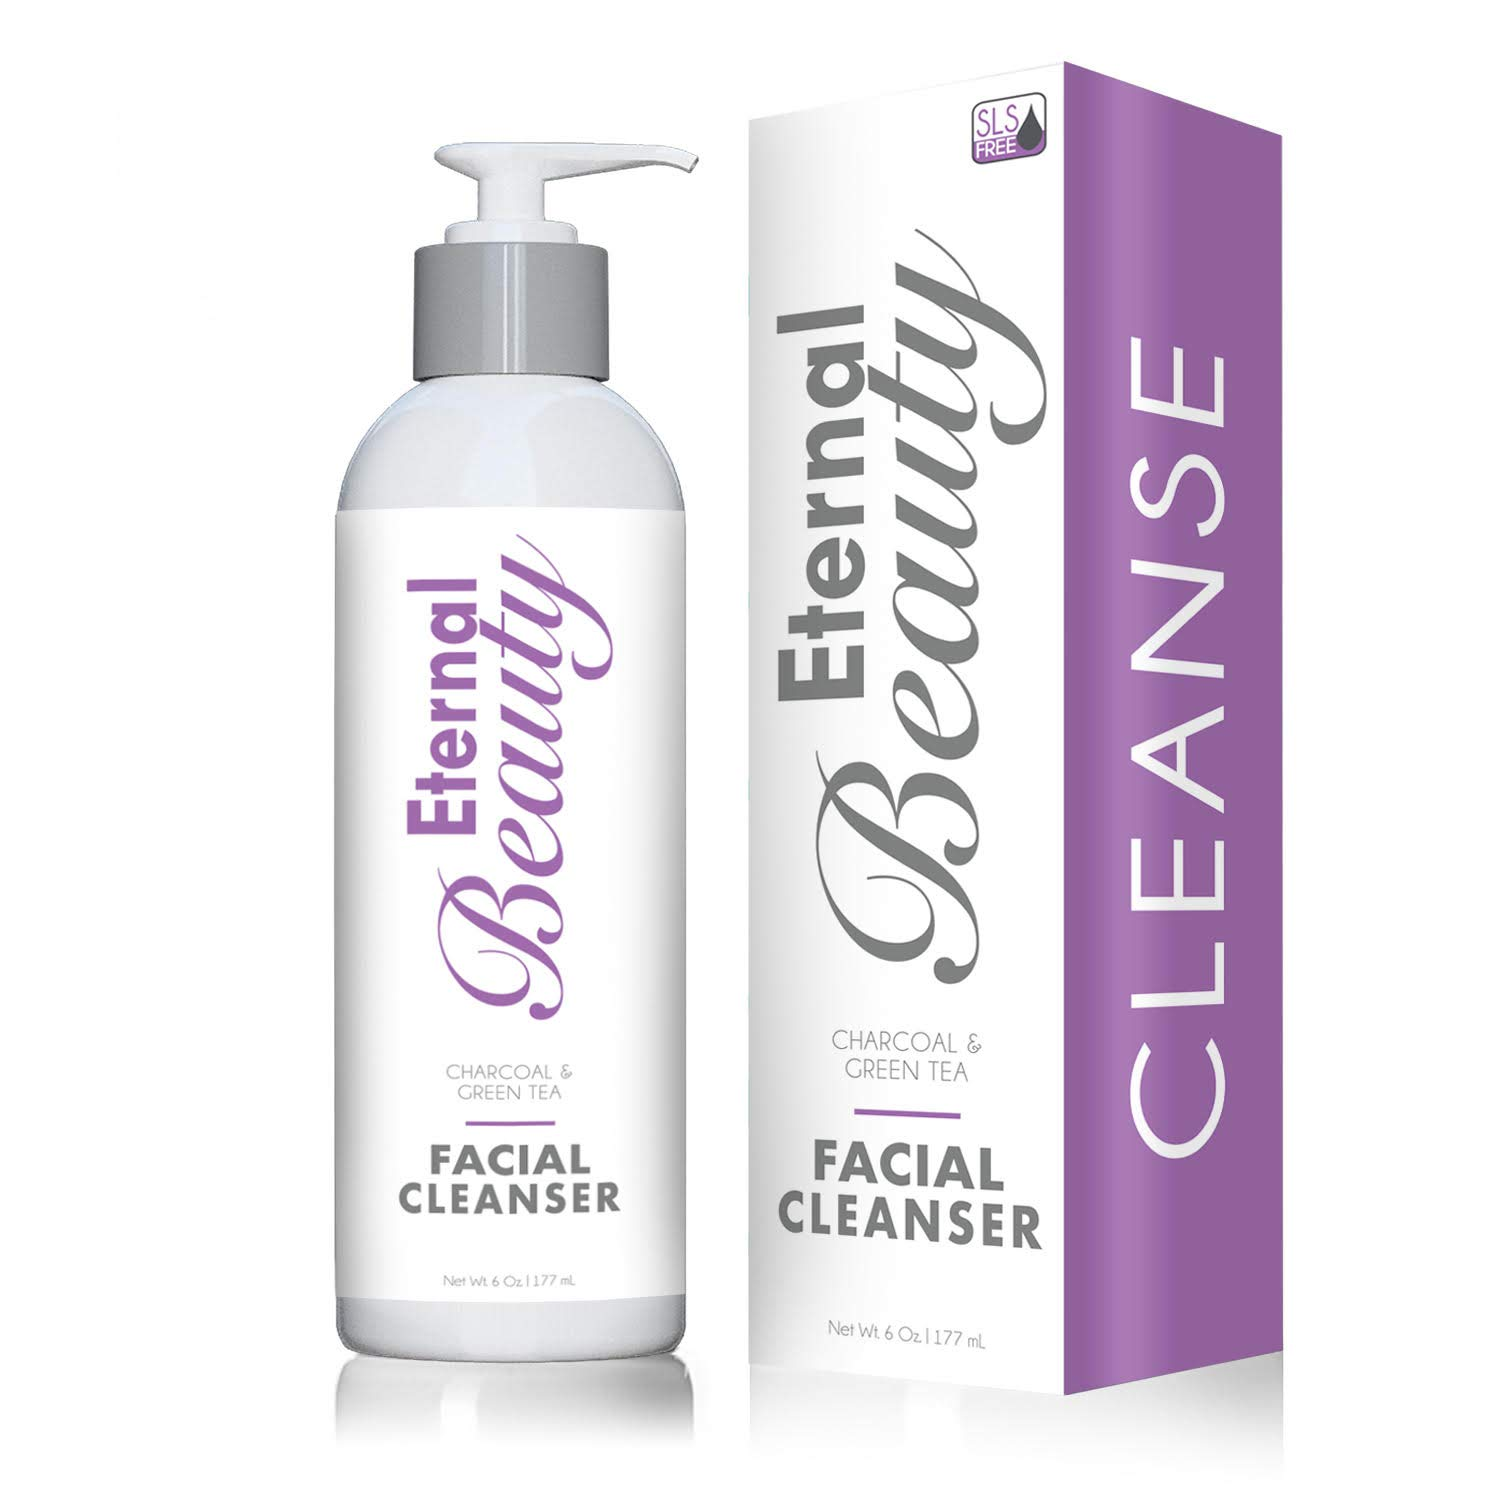 Cruelty Free Face Wash By Eternal Beauty - Detoxifying Charcoal, Gluten Free, For Sensitive Skin - Removes Dirt, and Makeup from Your Pores, Detoxifies, Based on Natural Ingredients!